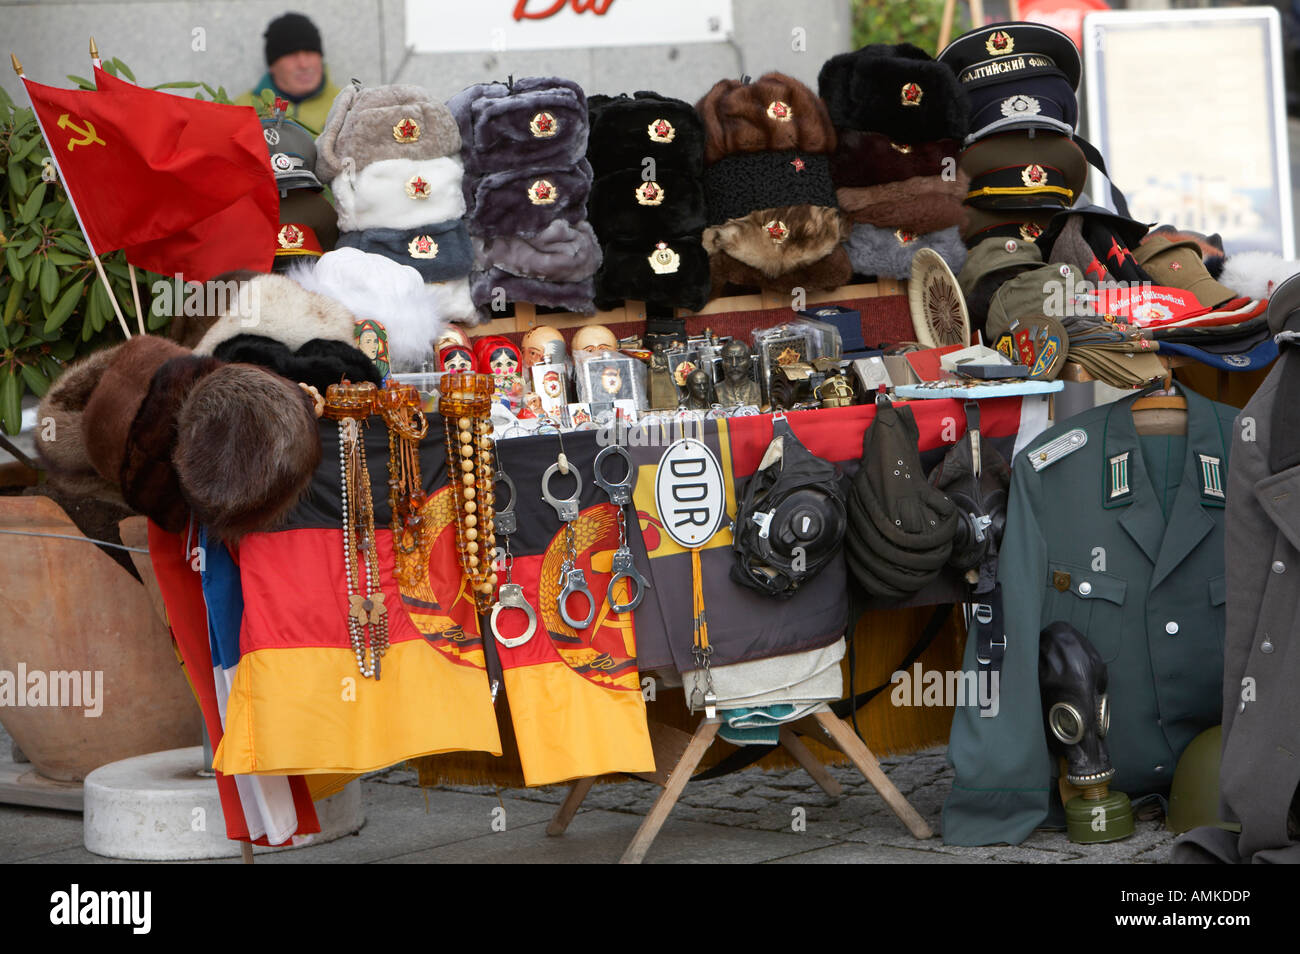 east german and russian memorabilia on sale at a street stall near checkpoint charlie Berlin Germany - Stock Image